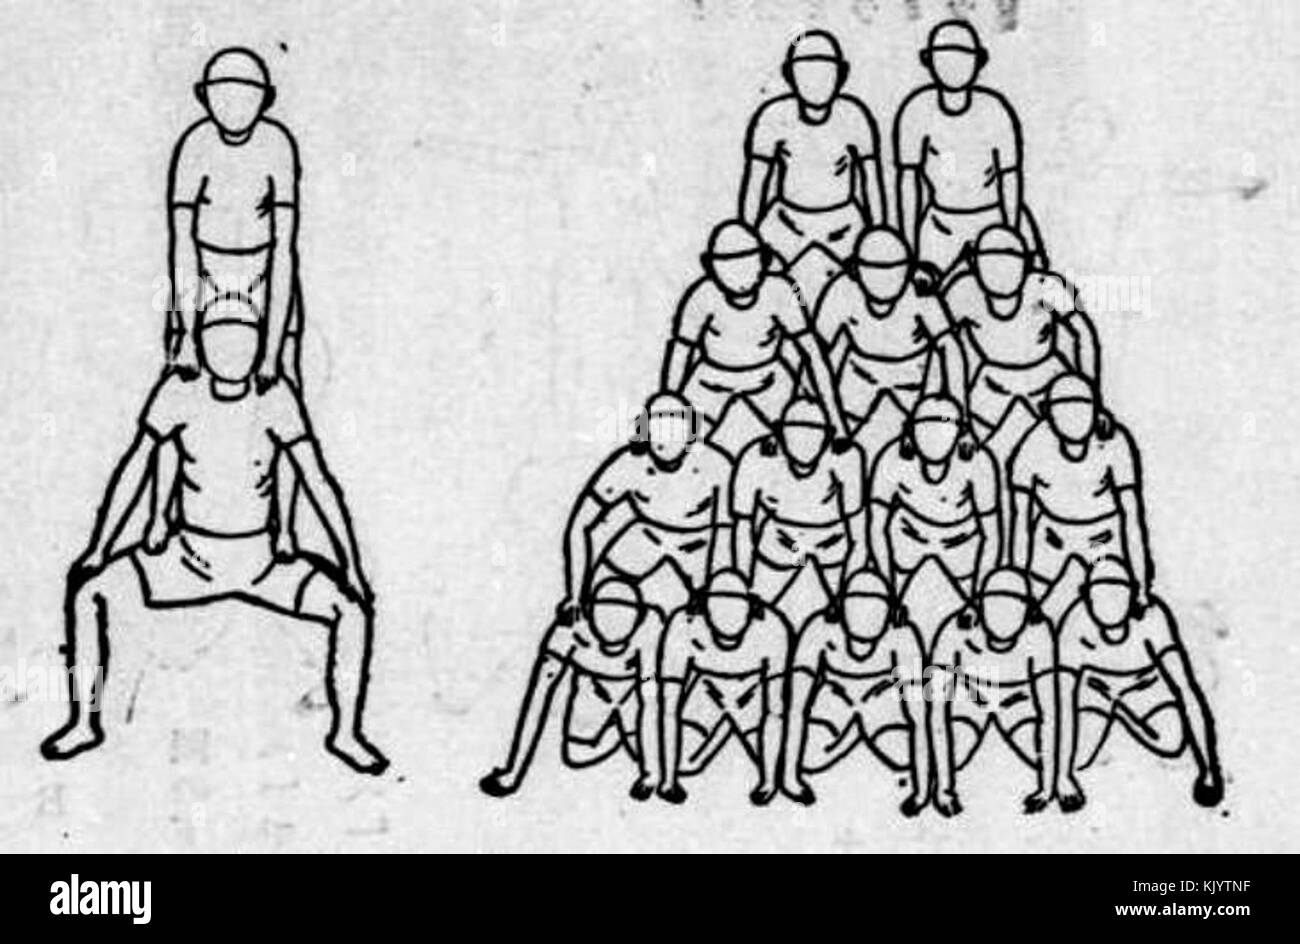 Human Pyramid Black And White Stock Photos Images Alamy